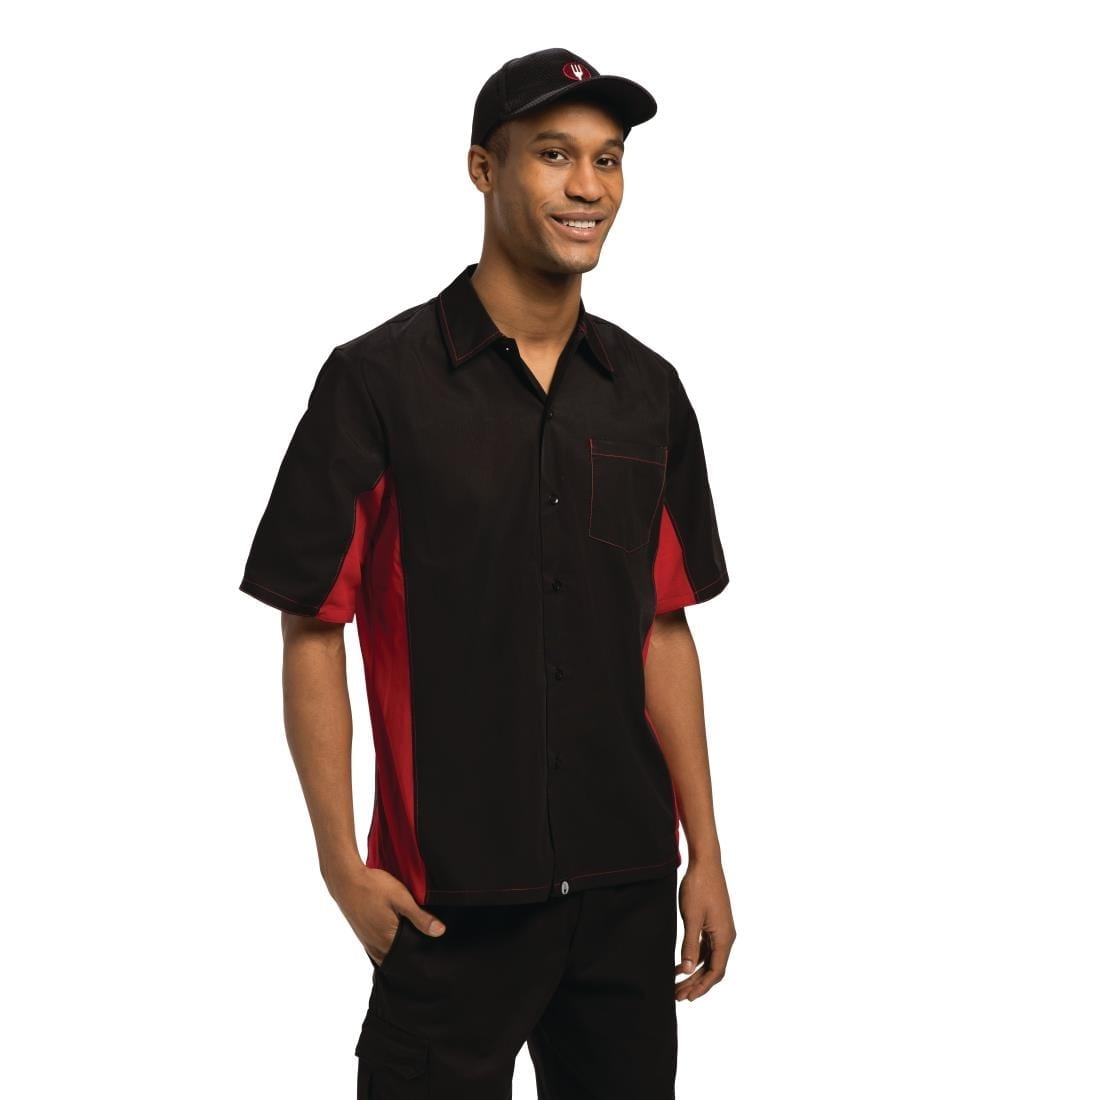 Chef Works Unisex Contrast Shirt Black and Red S